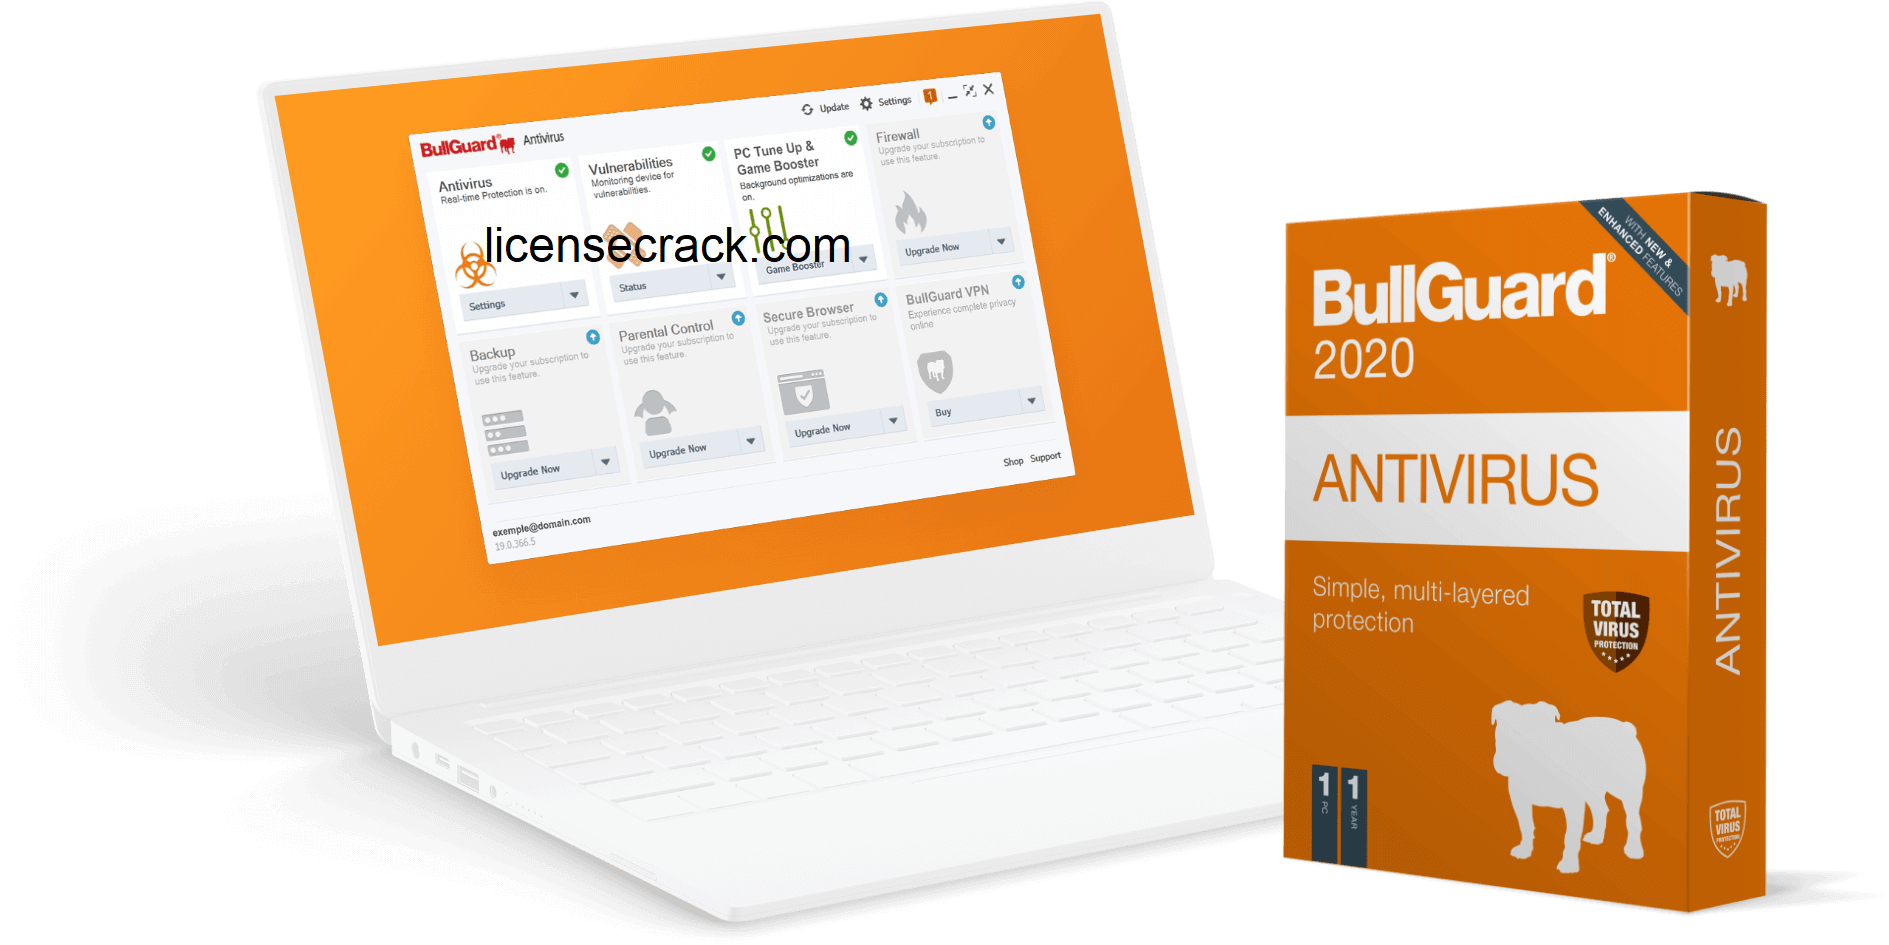 BullGuard Antivirus 21.0.385.9 Crack with License Key 2020 Free Download